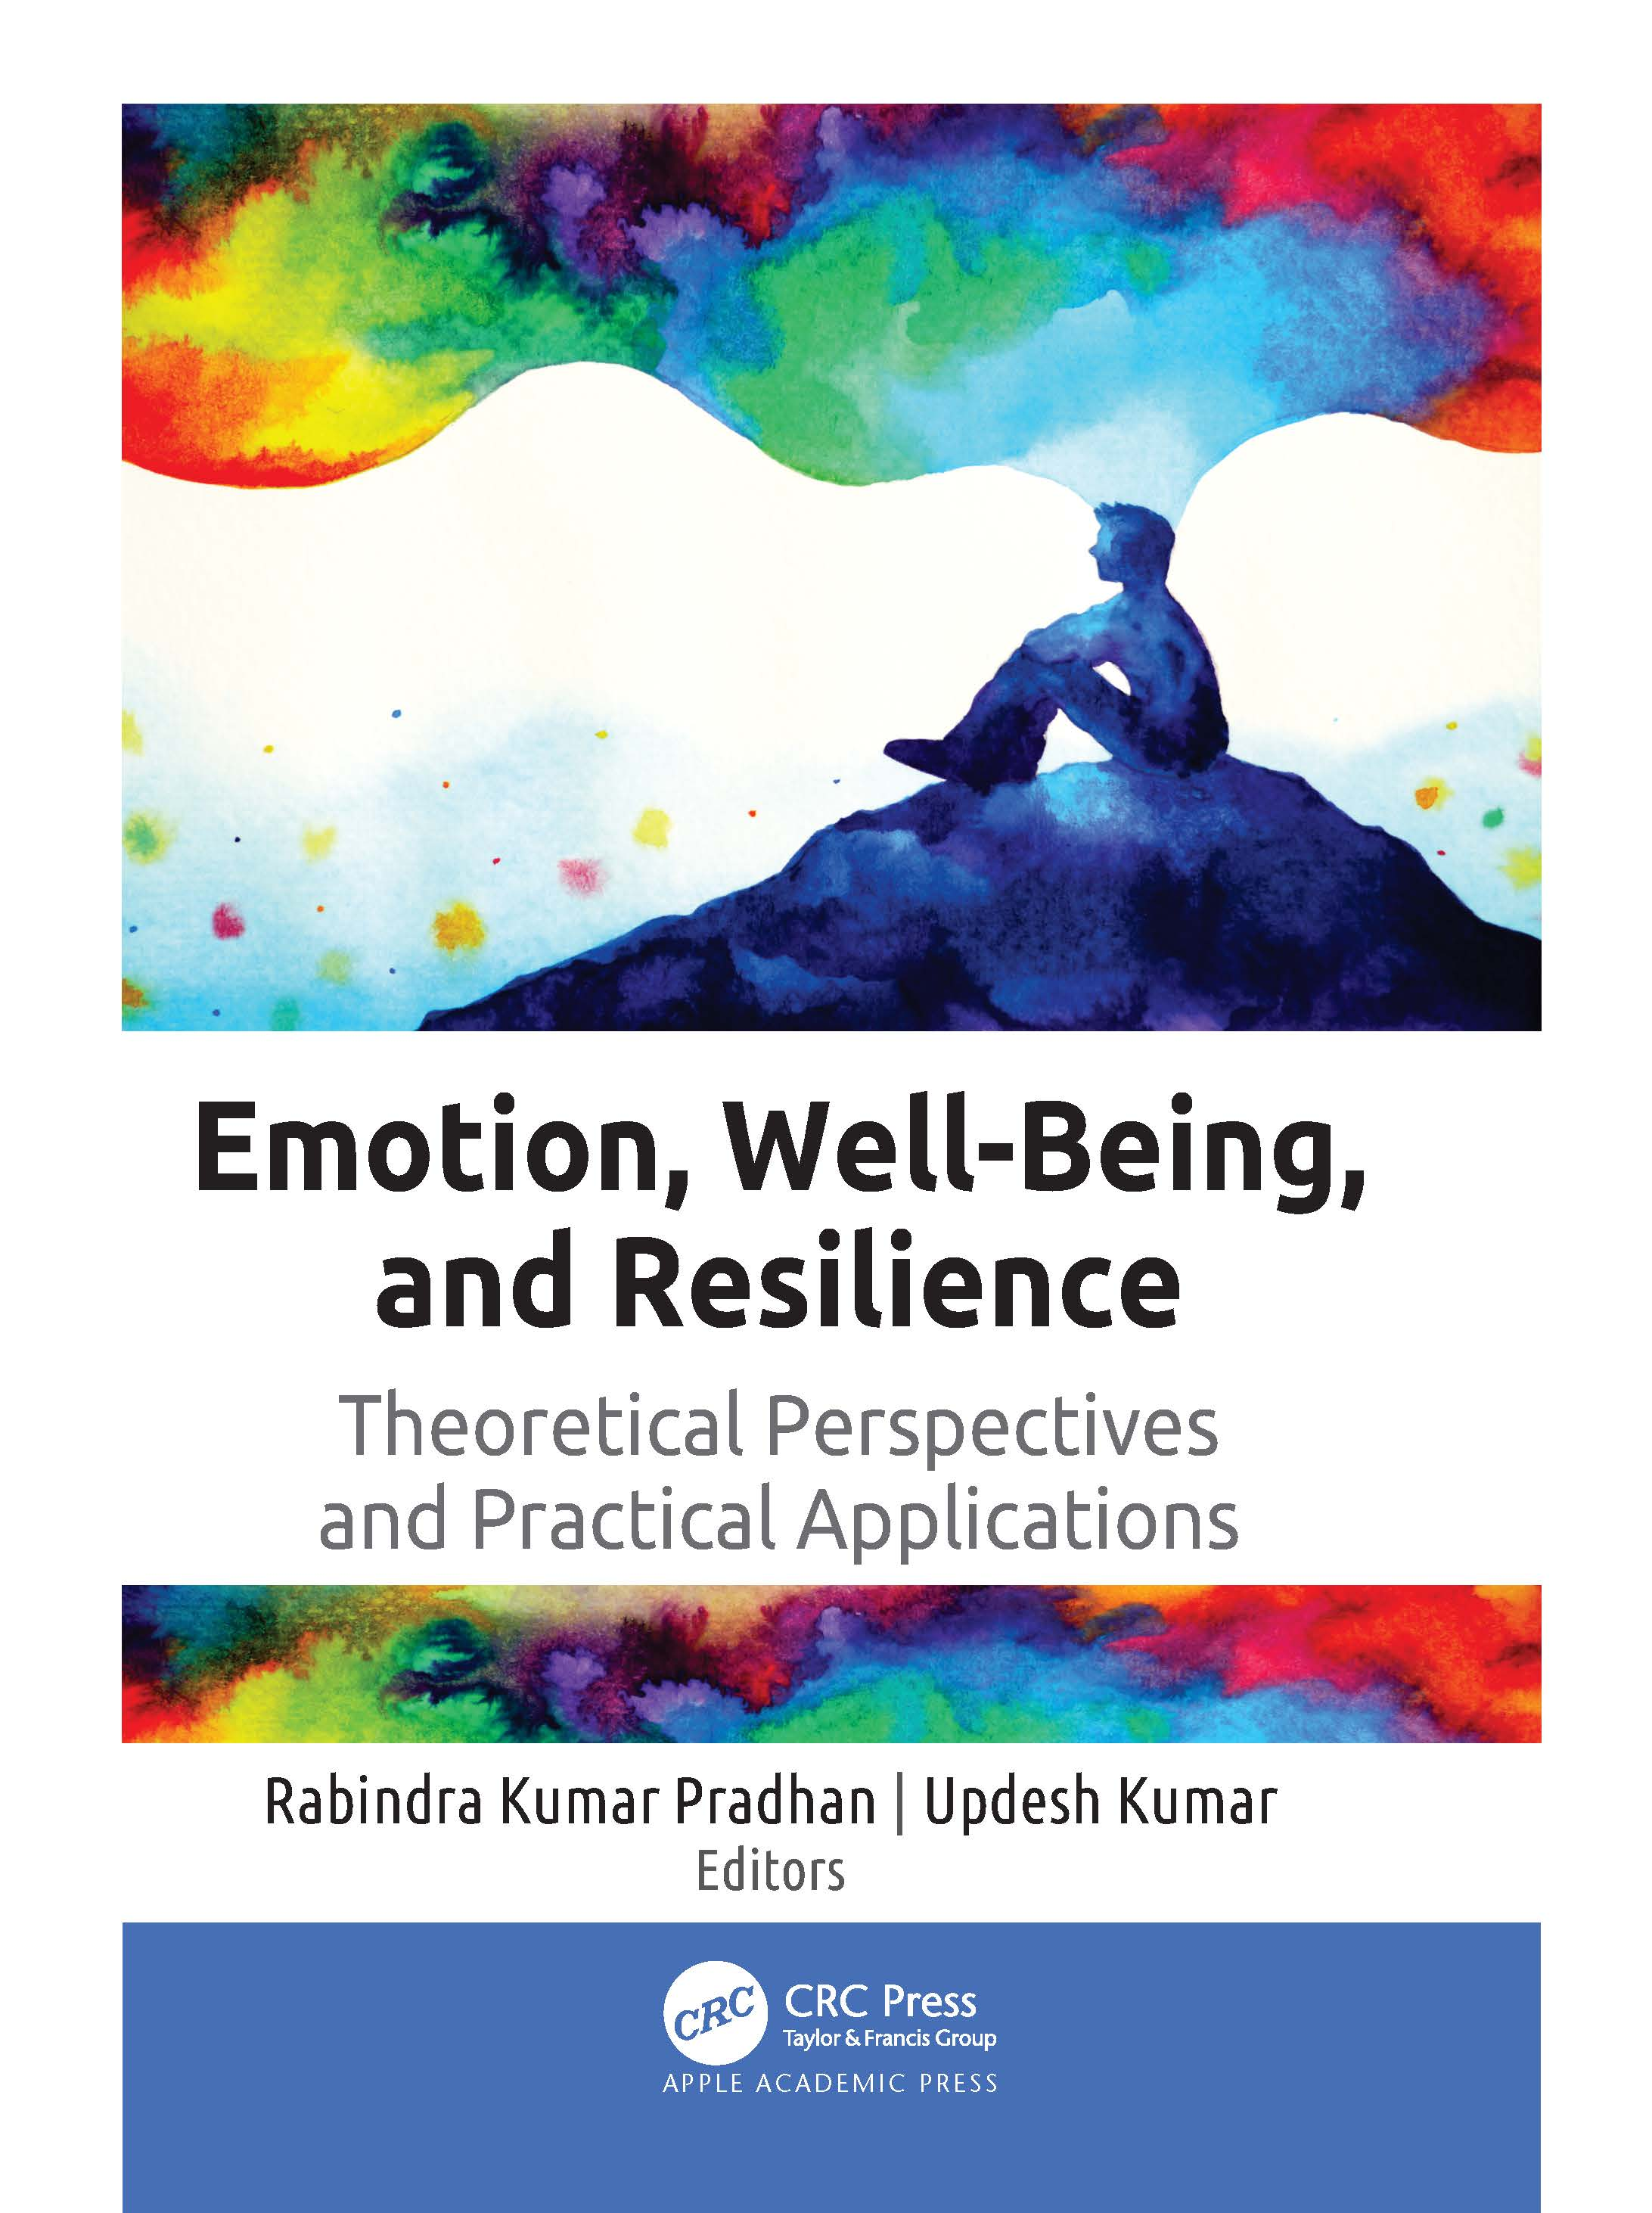 Positive Emotions at Workplace